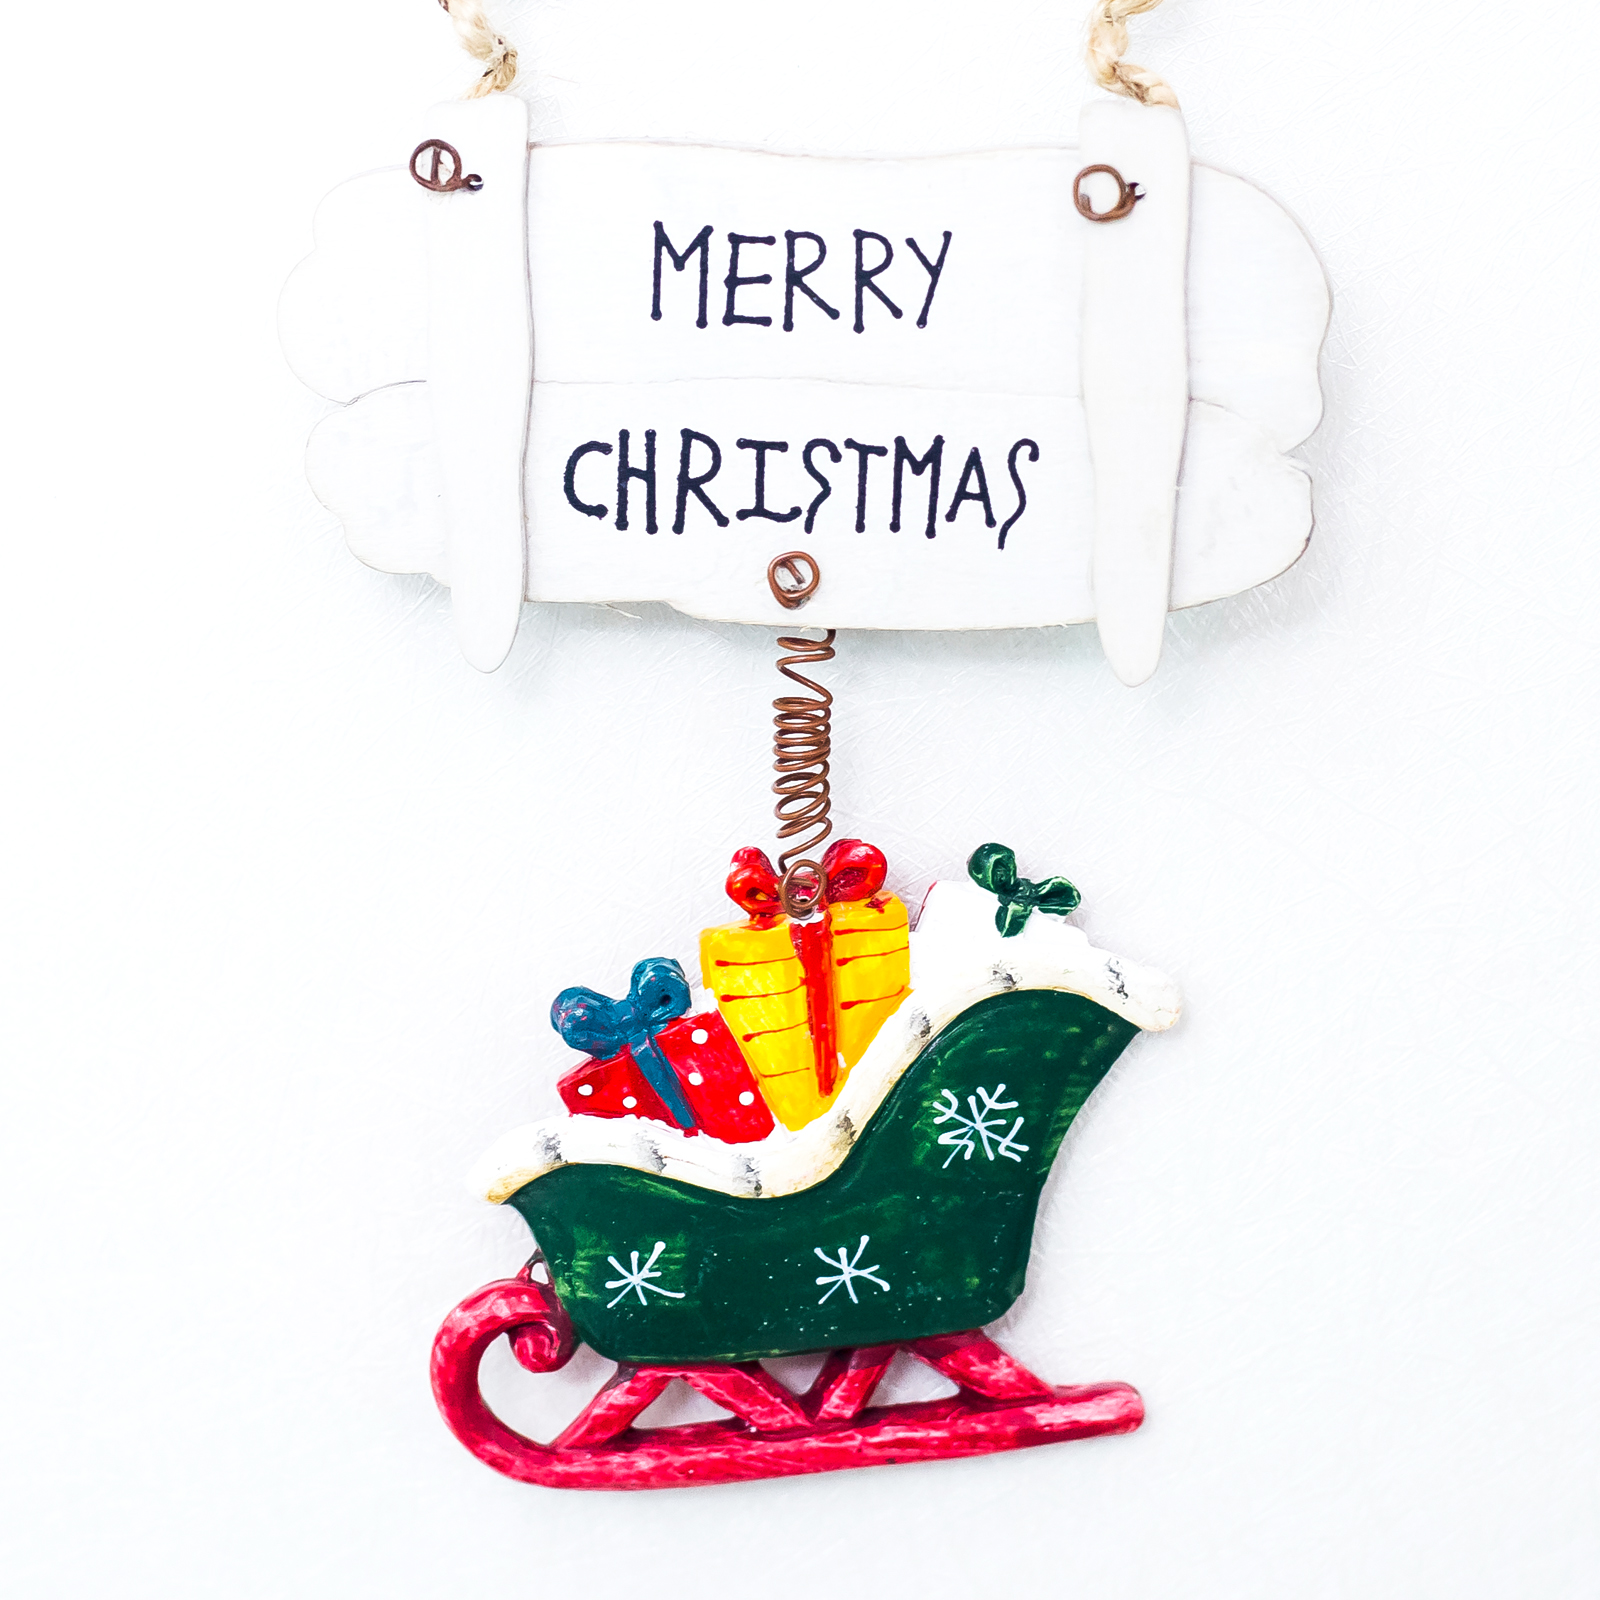 Fengrise Diy Felt Christmas Tree Kids Artificial Tree Ornaments Christmas Stand Decorations Gifts New Year Xmas Decoration Cheap For All In House Products Sled Decoration In Full Home